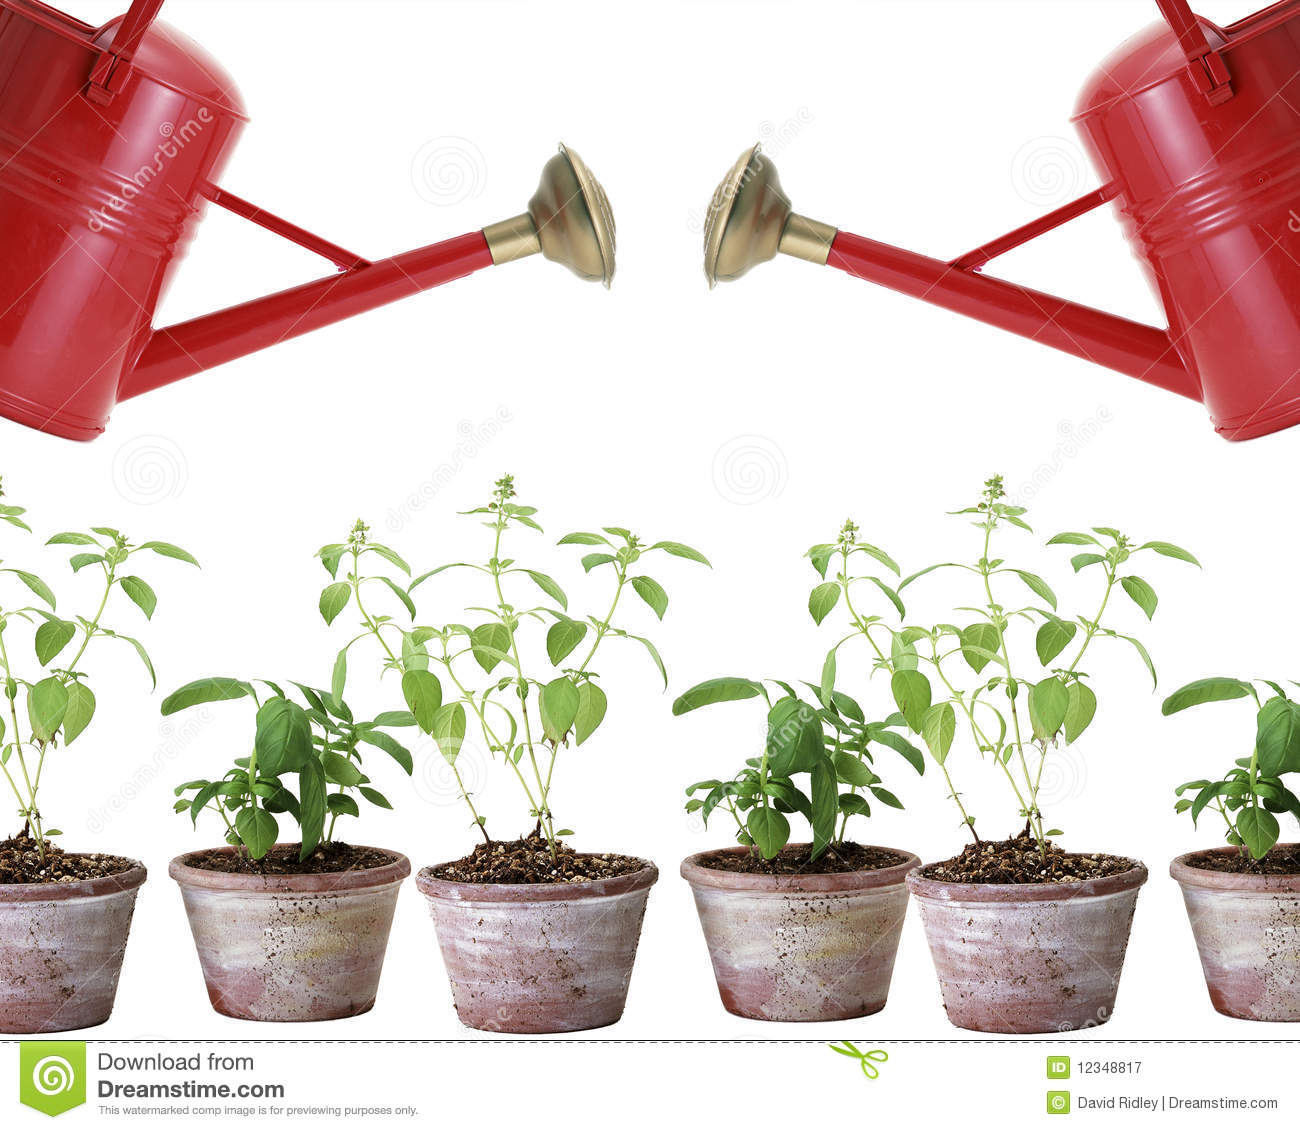 Plant Watering Cans Two Red Watering Cans And Plants In Pots Stock Image